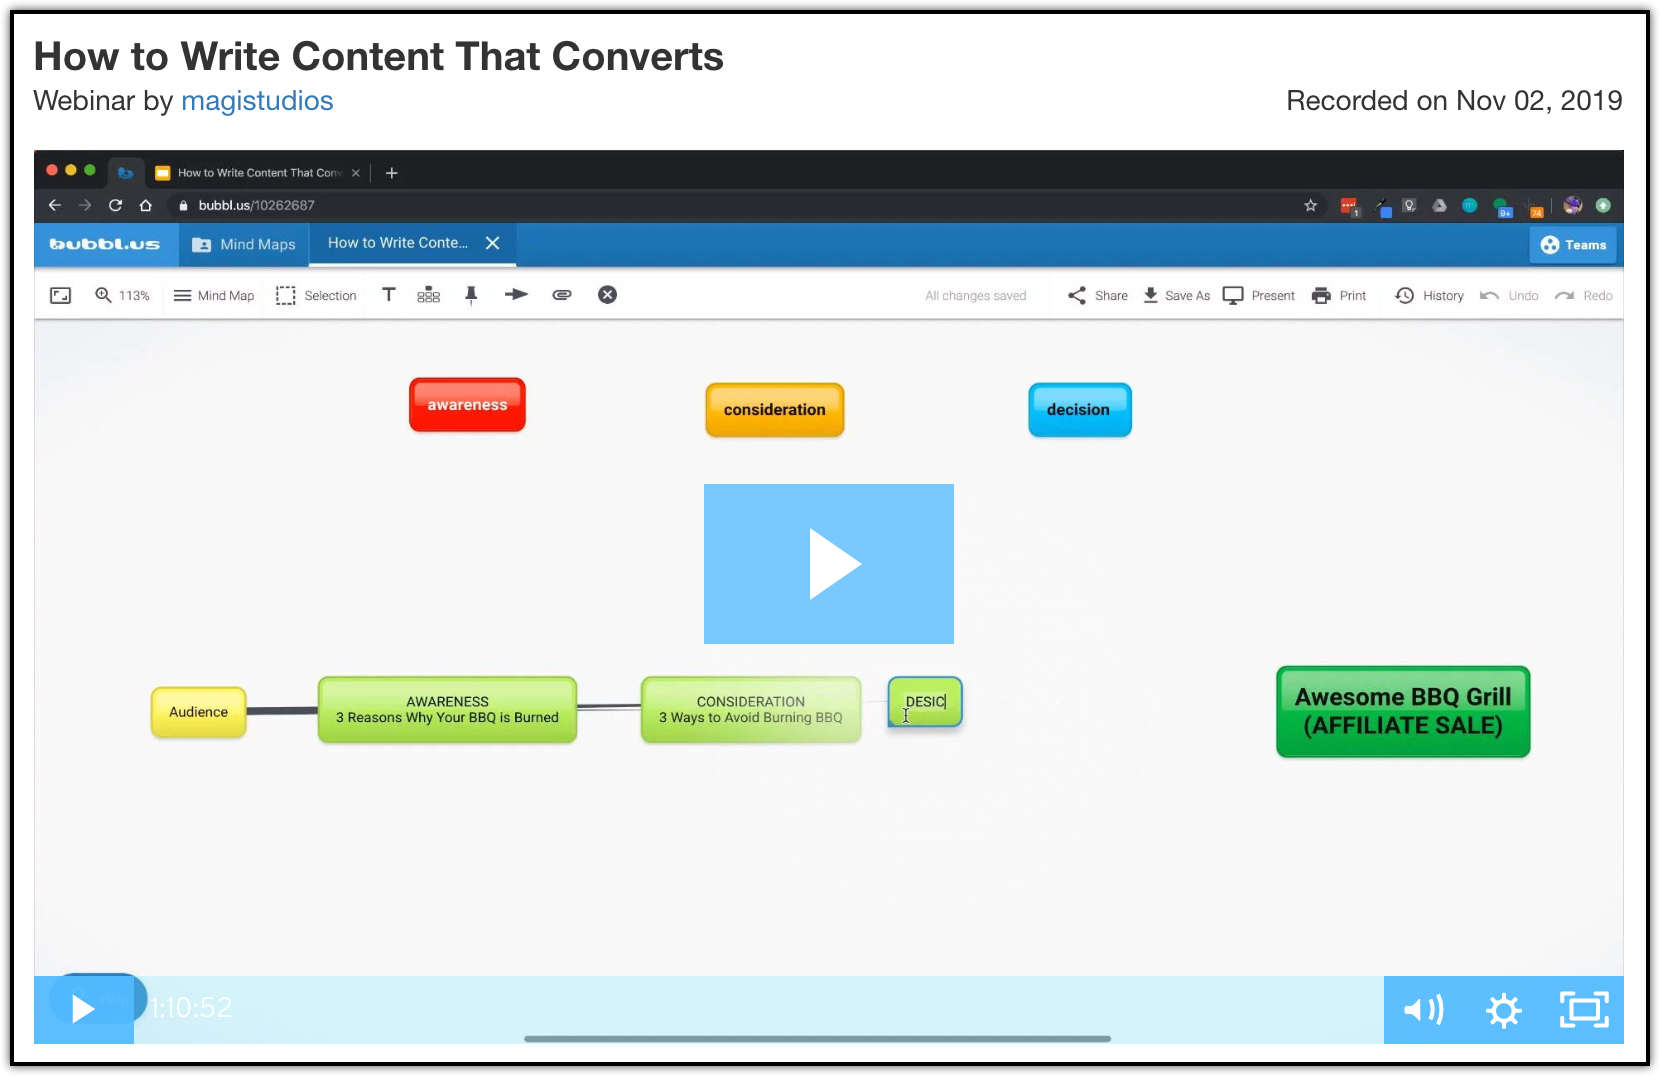 webinar - how to write content that converts